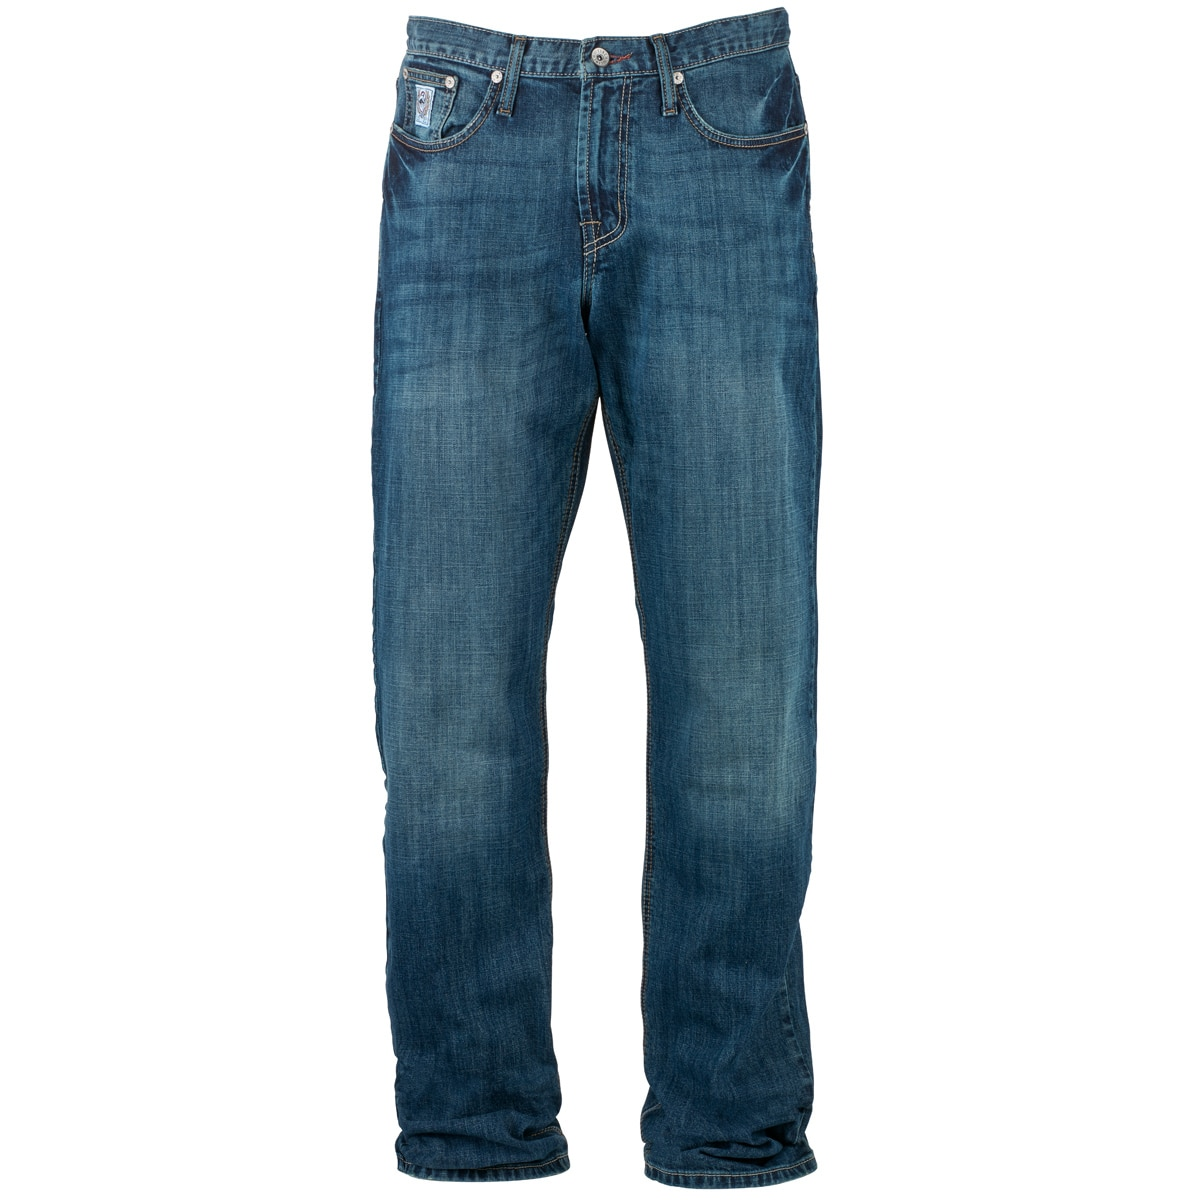 dae5b16a09c Cinch Men s White Label Mid Rise Relaxed Straight Jeans